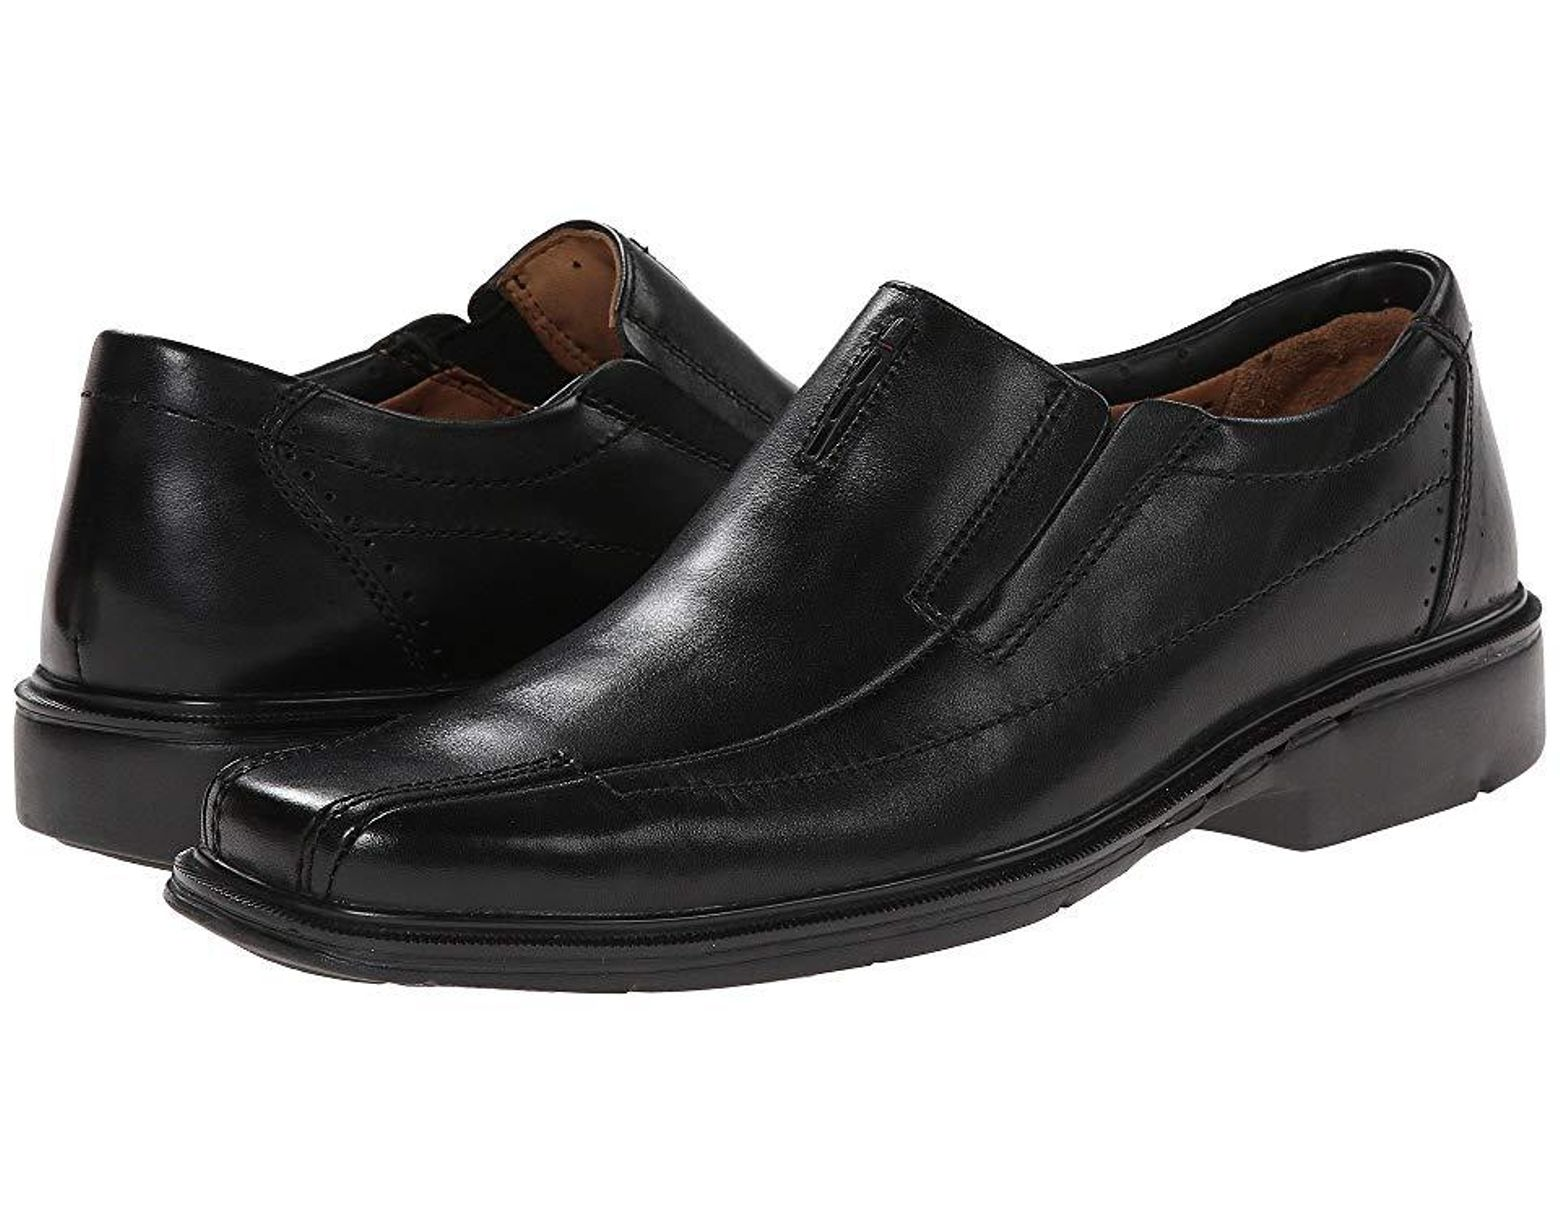 on feet at famous brand superior quality Men's Un.sheridan (black Leather) Slip-on Dress Shoes